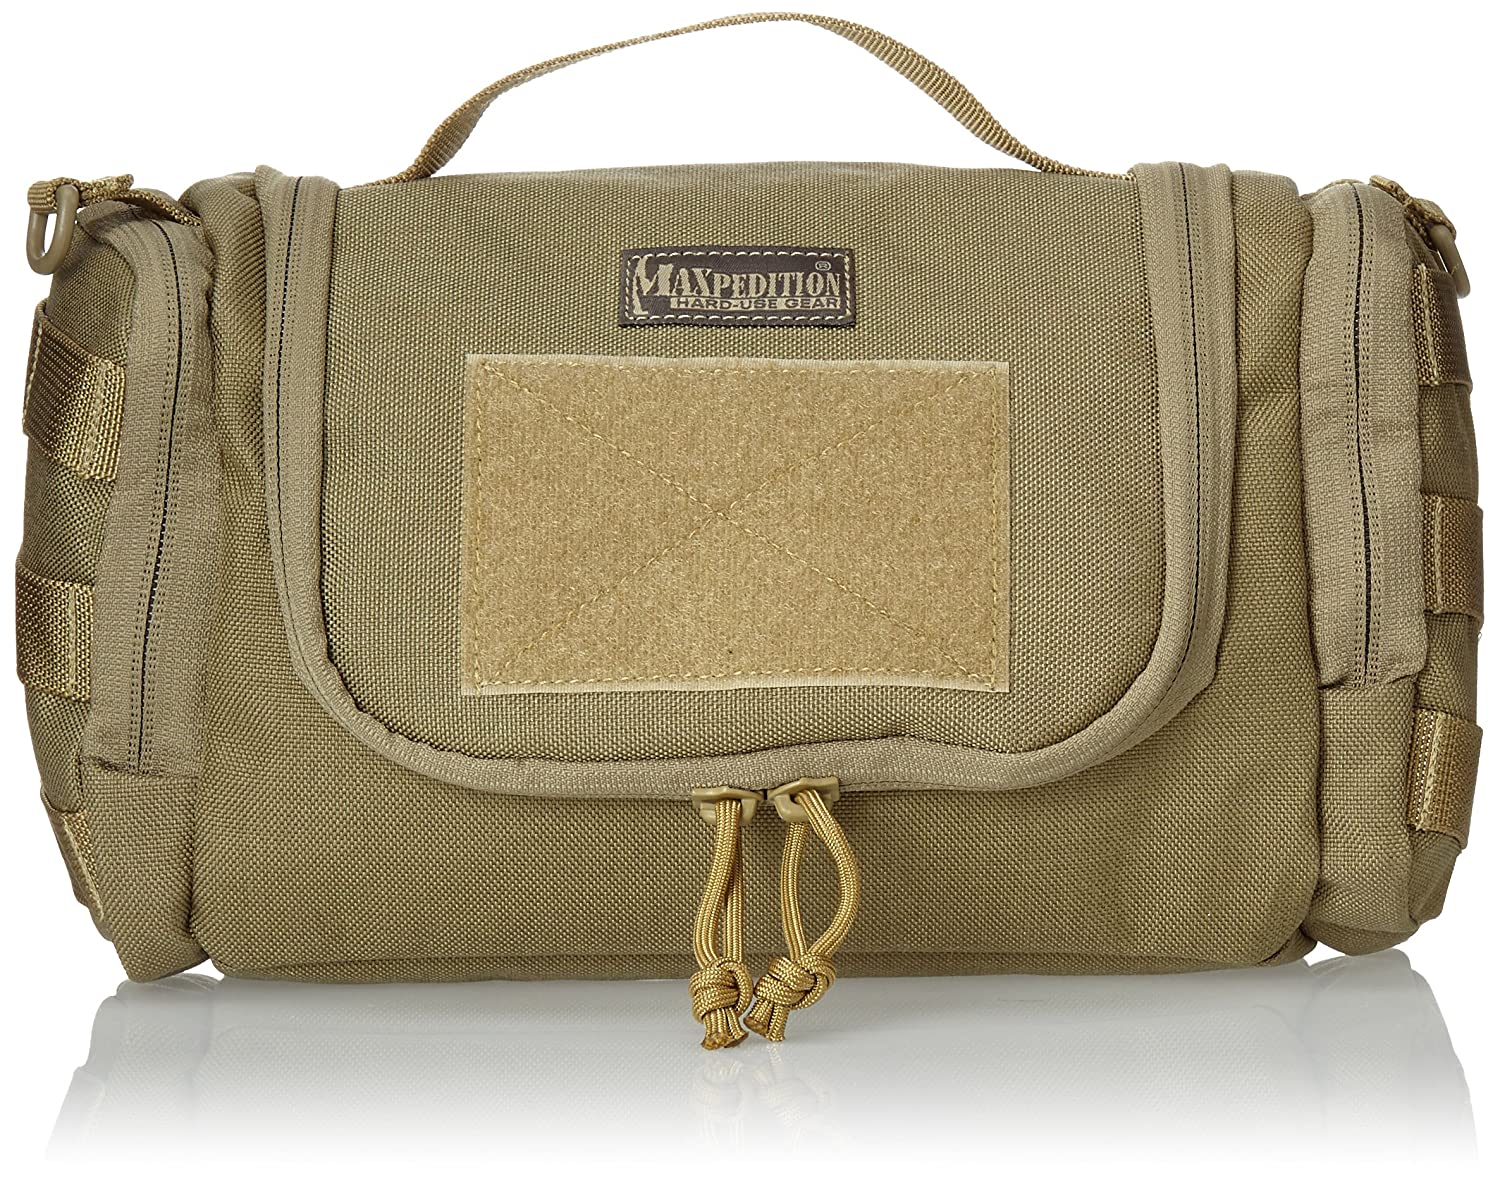 Maxpedition Gear Aftermath Compact Toiletries Bag